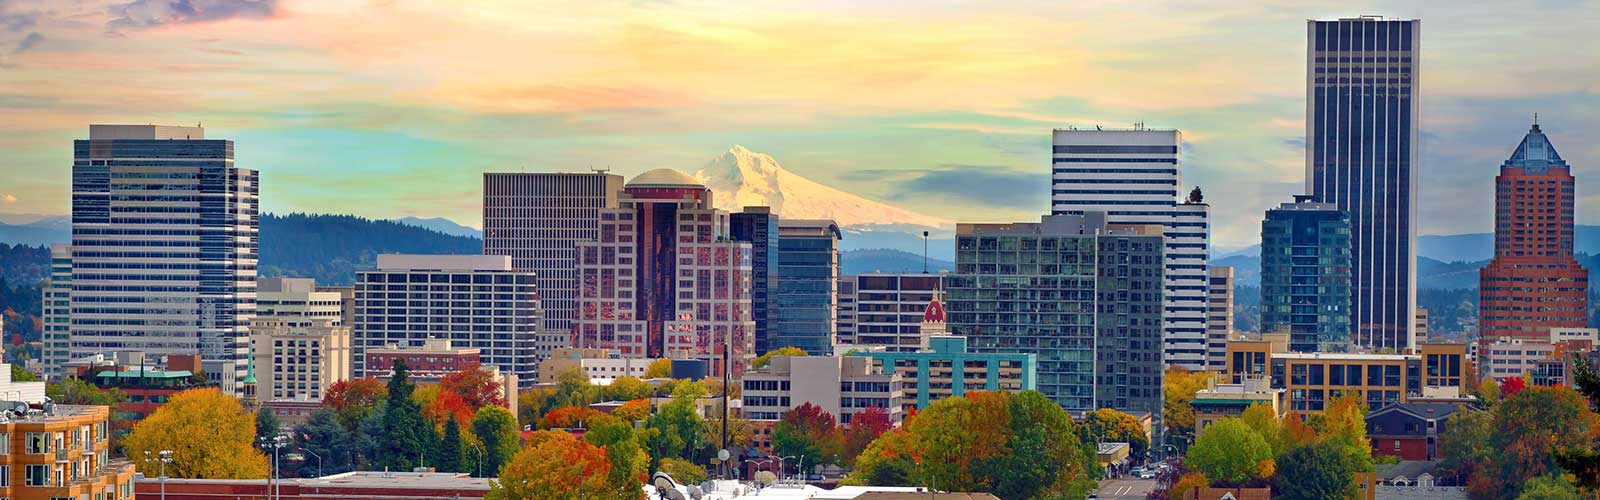 Mount Hood on Portland skyline.